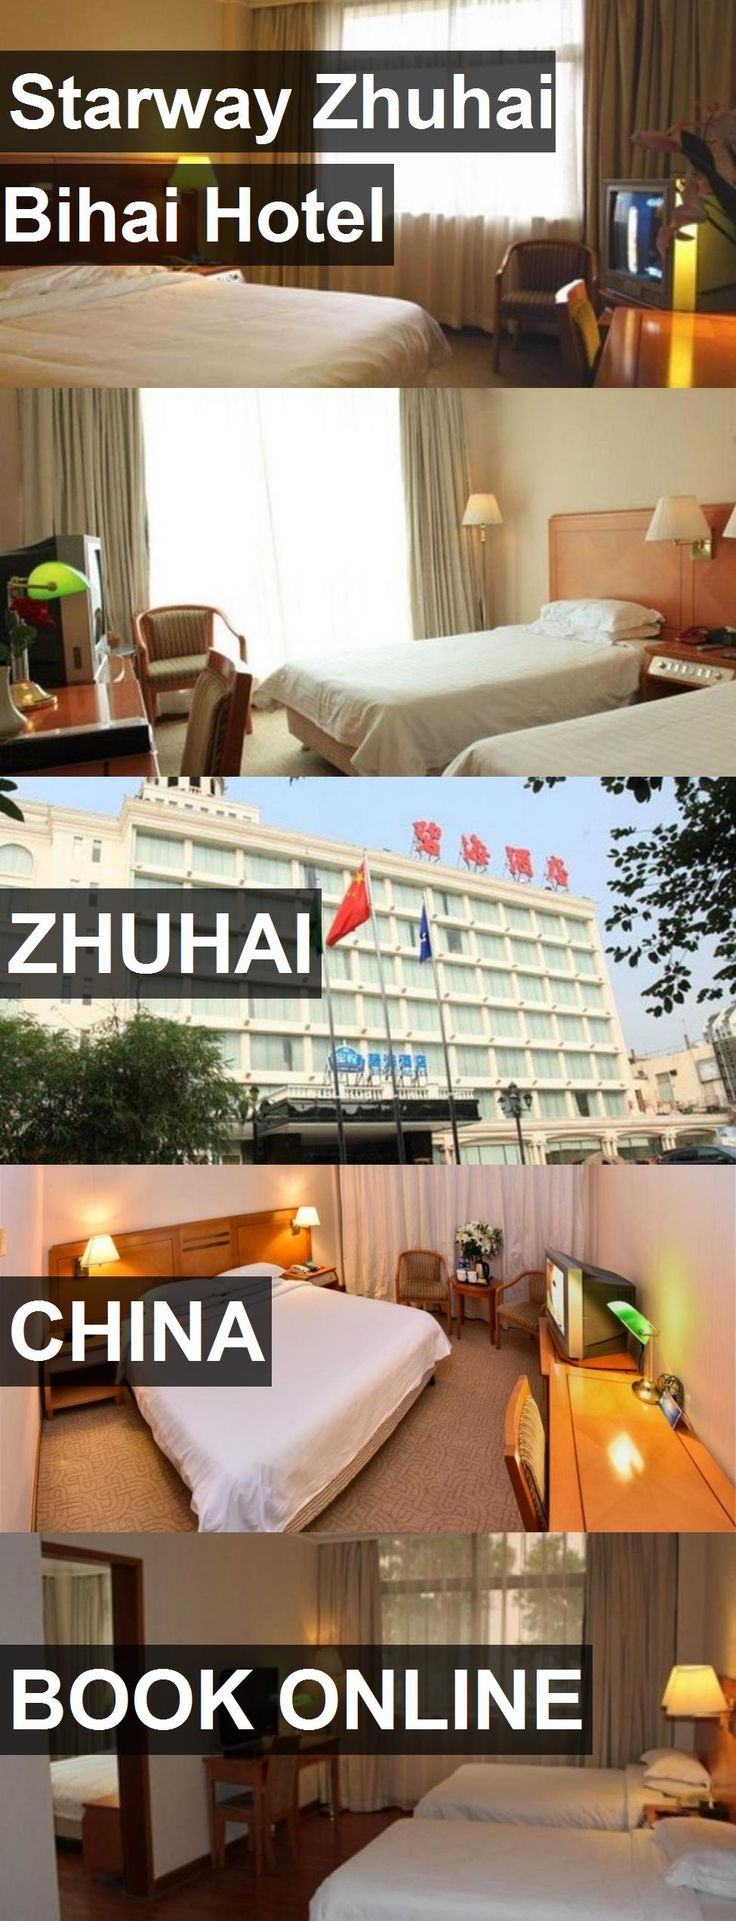 Hotel Starway Zhuhai Bihai Hotel in Zhuhai, China. For more information, photos, reviews and best prices please follow the link. #China #Zhuhai #StarwayZhuhaiBihaiHotel #hotel #travel #vacation